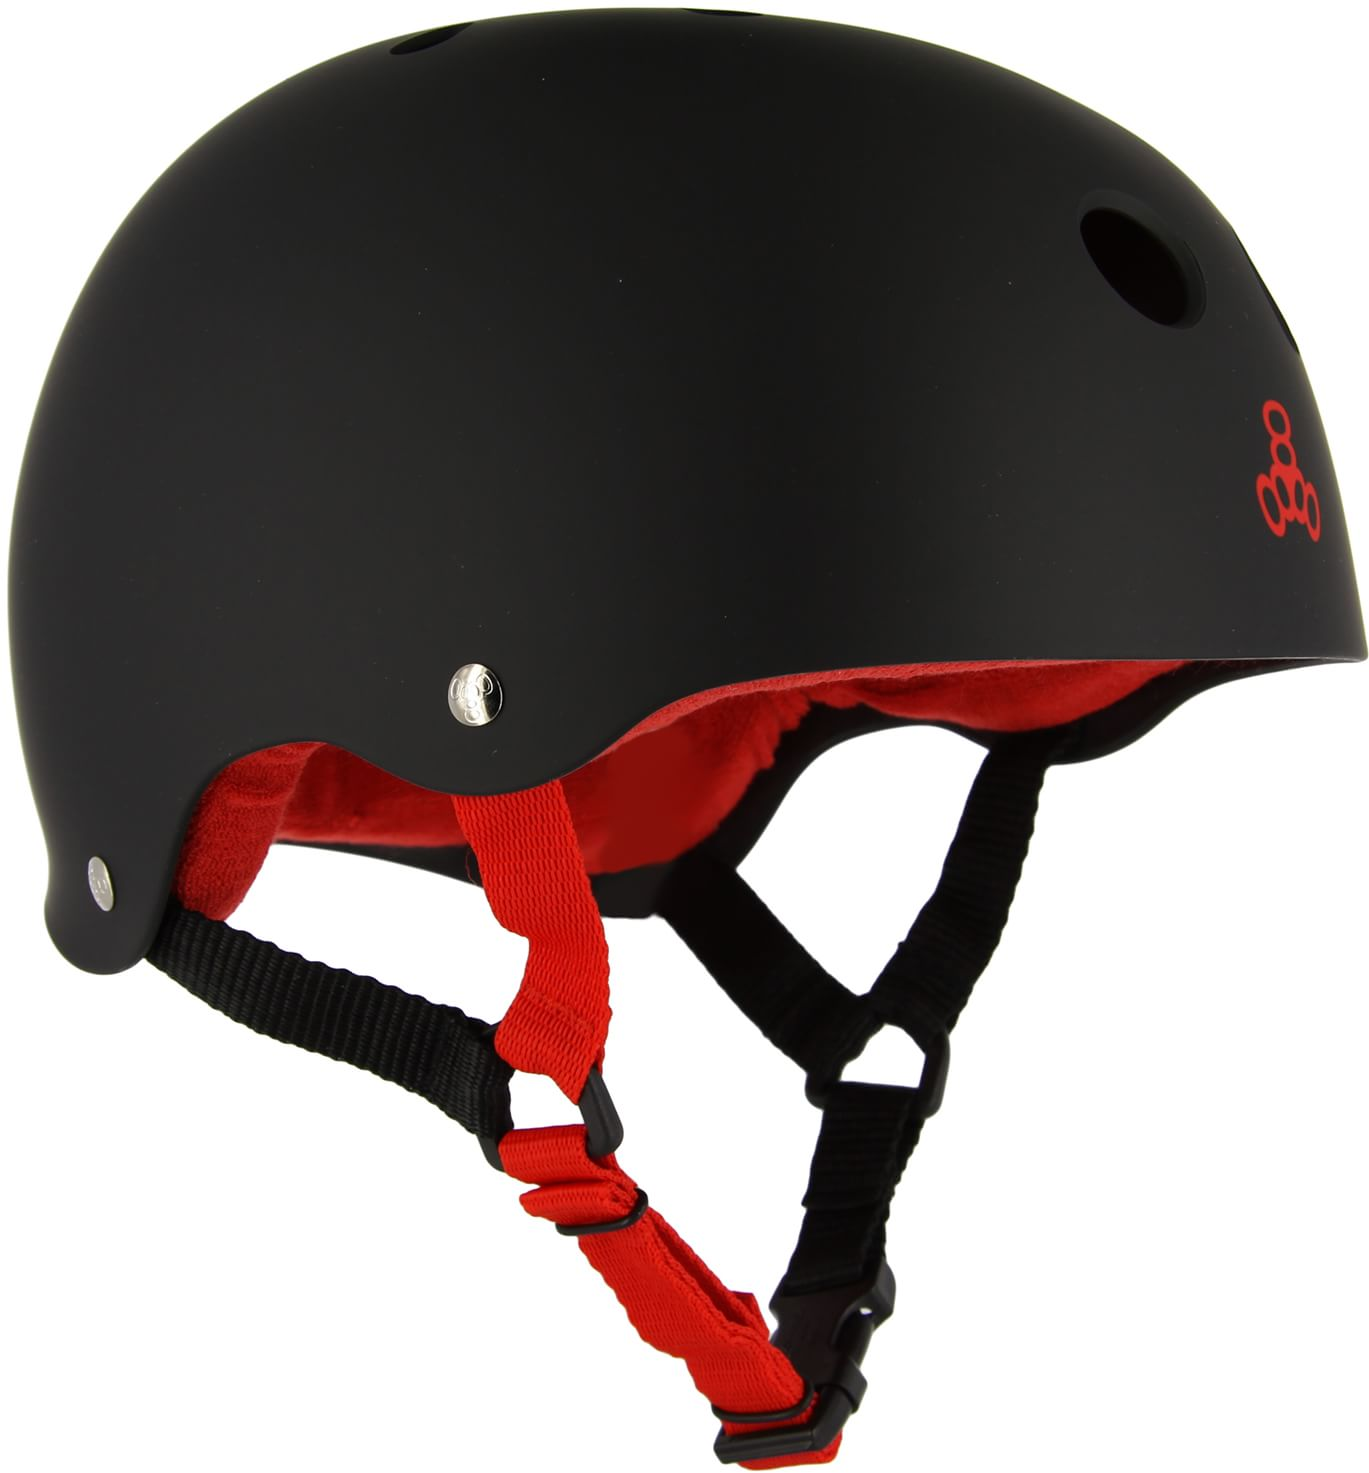 Why Are Bike Helmets And Skateboard Helmets Different